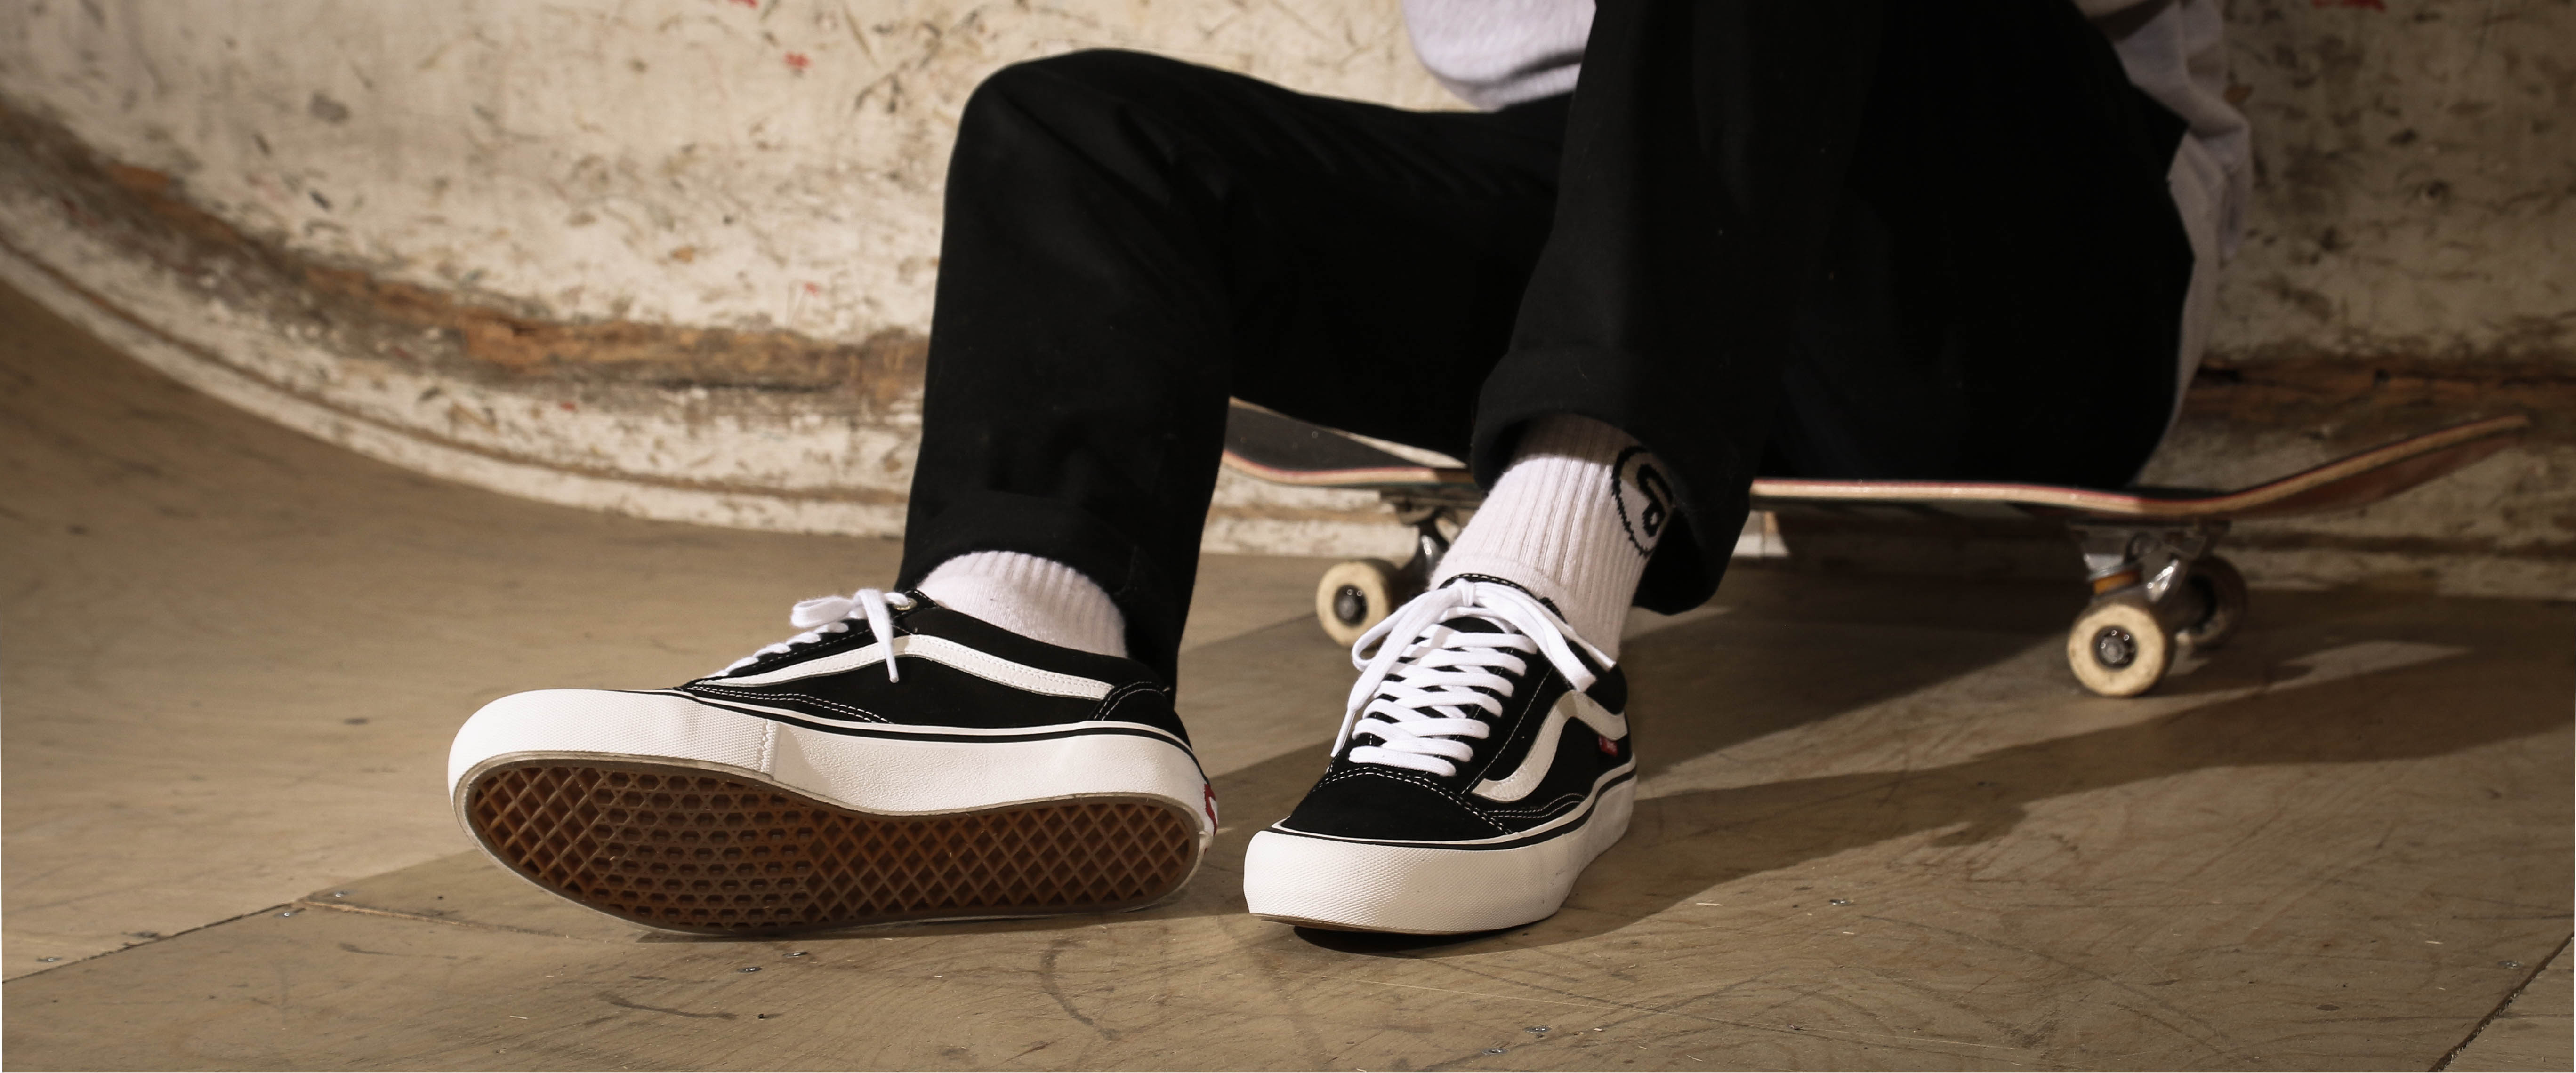 Vans from J.Crew | Shoes mens, Shoes, Sneakers men